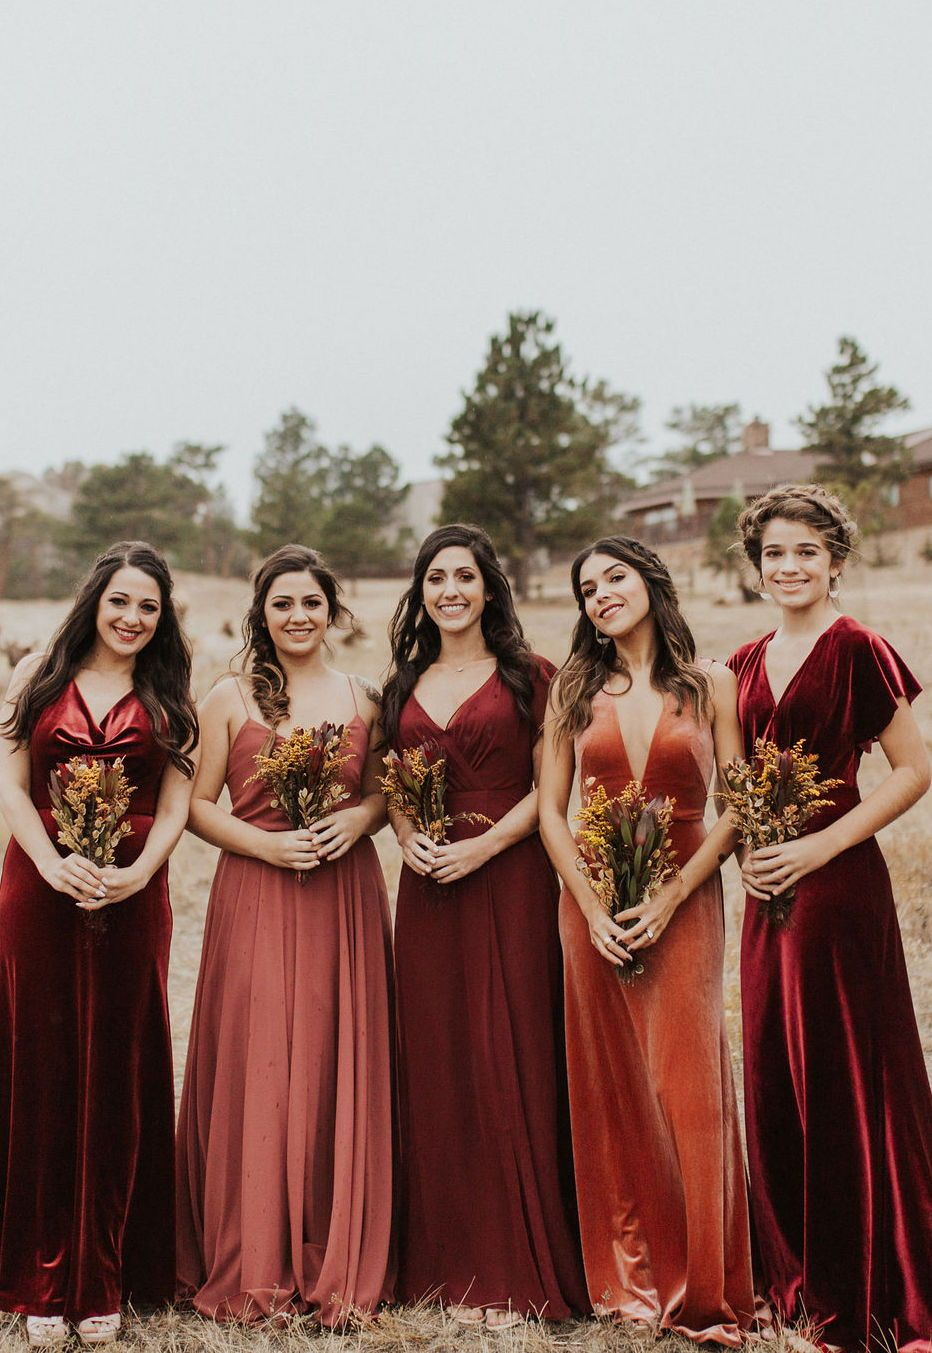 Luxe Velvet Bridesmaids Dresses By Jenny Yoo These Stunning Gowns In This Rustic Shade Cal Fall Bridesmaid Dresses Velvet Bridesmaid Dresses Fall Bridesmaids